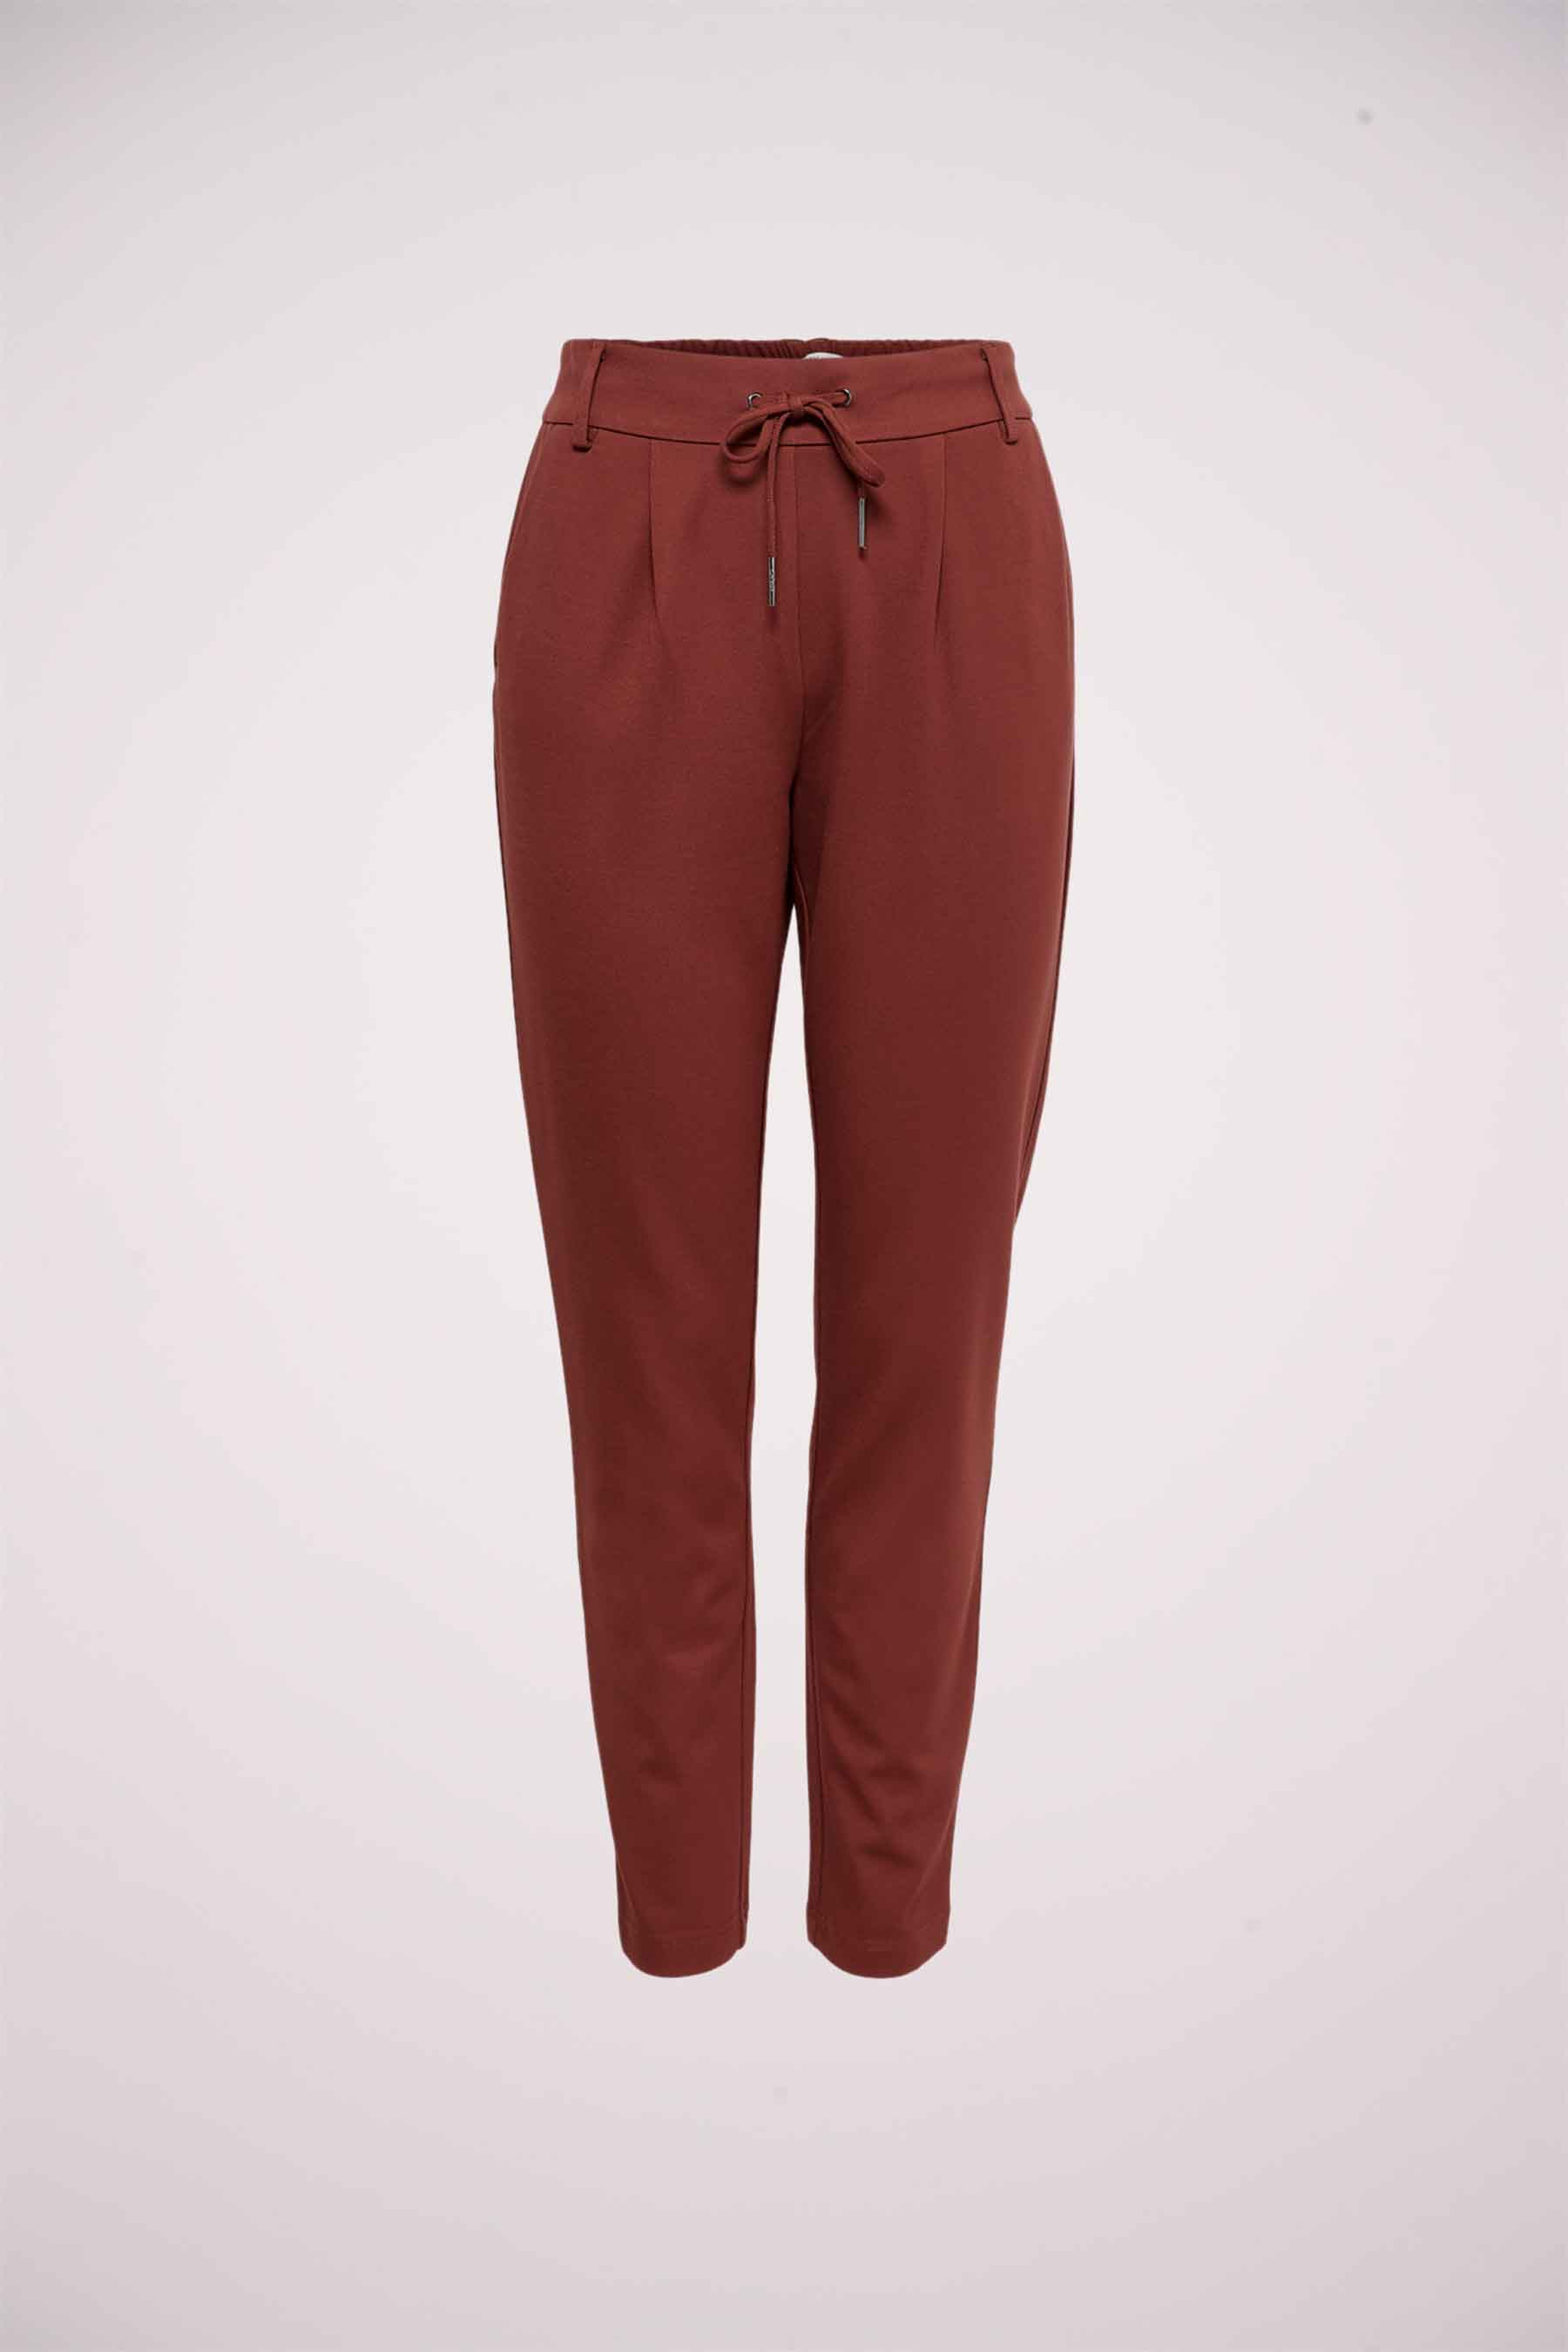 ONLY Chino, Rood, Dames, Maat: XLx32/XSx32